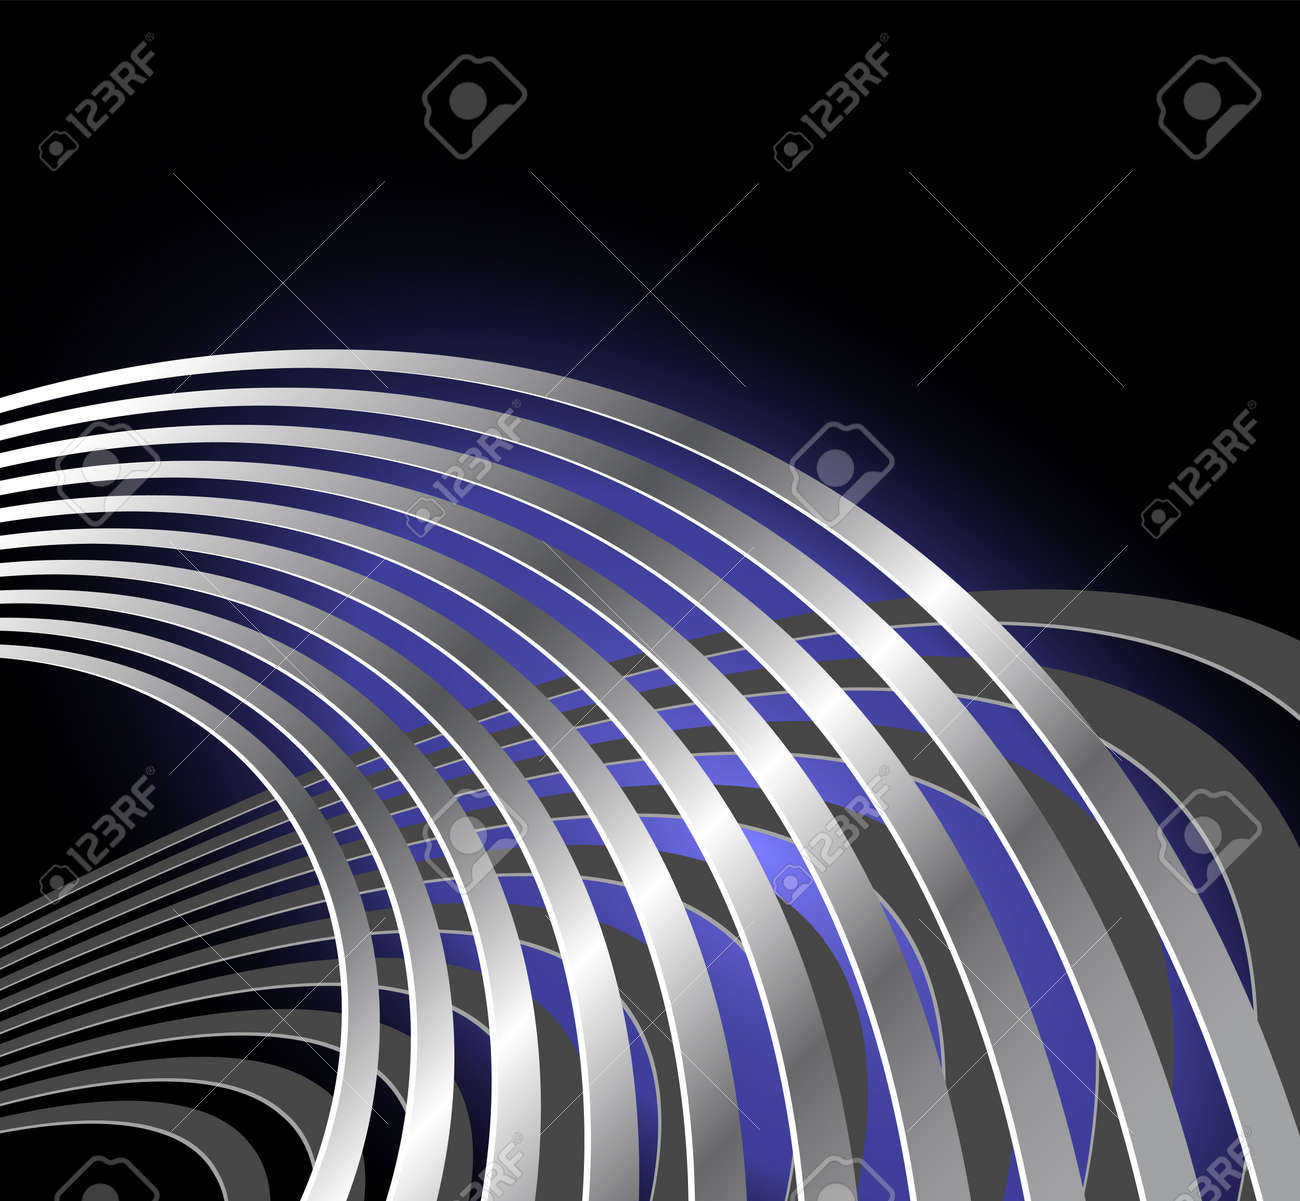 Abstract radio wave background with curved lines - musical vibration - sound waves Stock Vector - 15108804